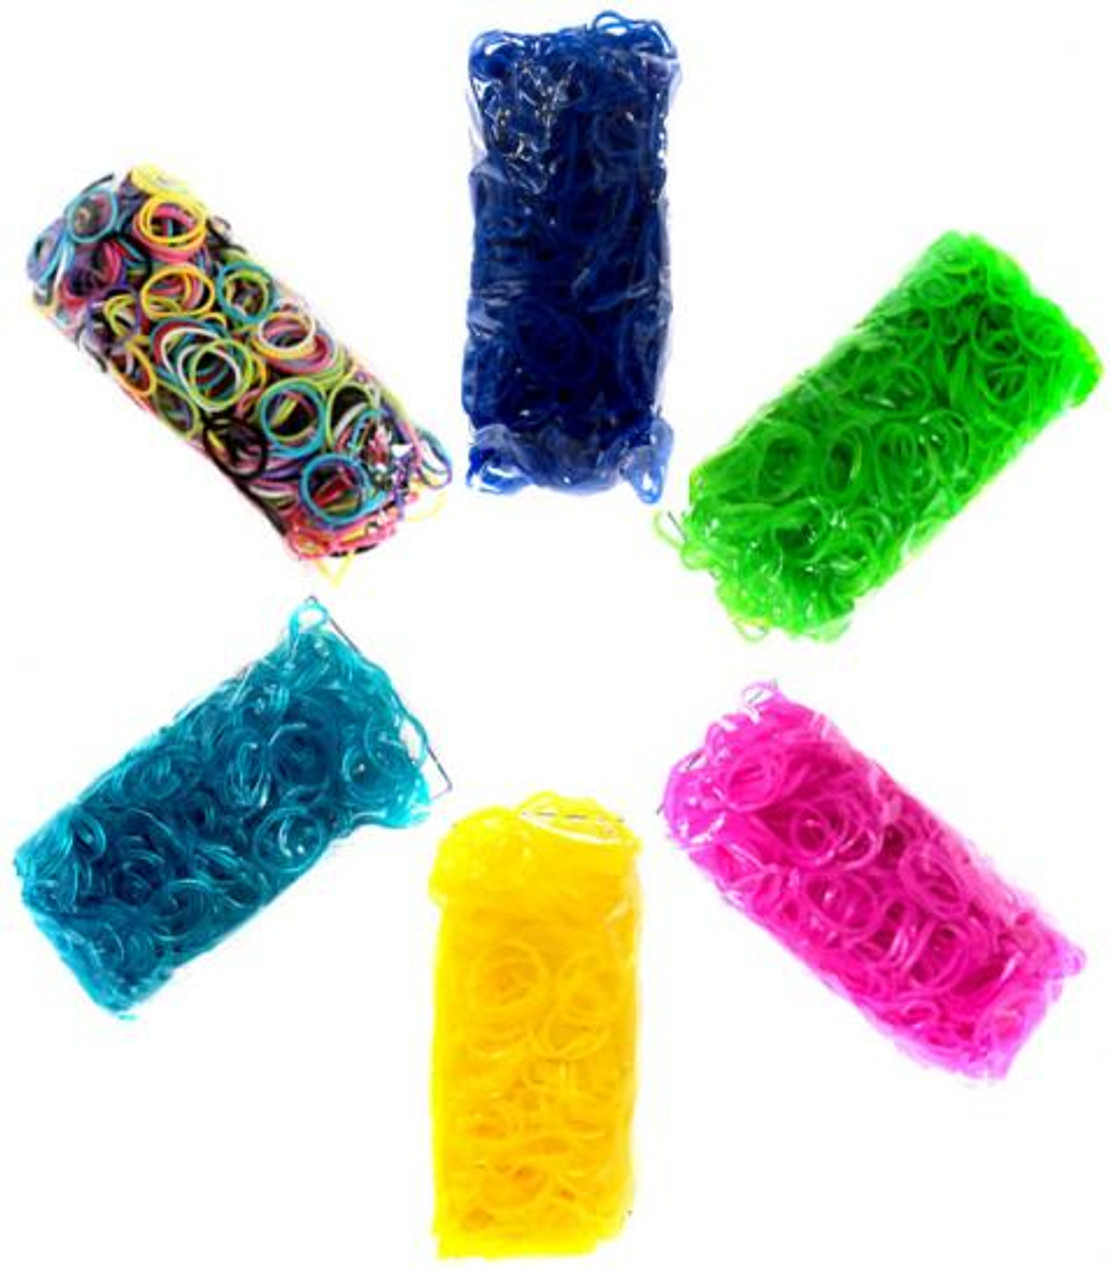 Rainbow Loom Random Colors Rubber Bands Refill Pack [3600 ct]